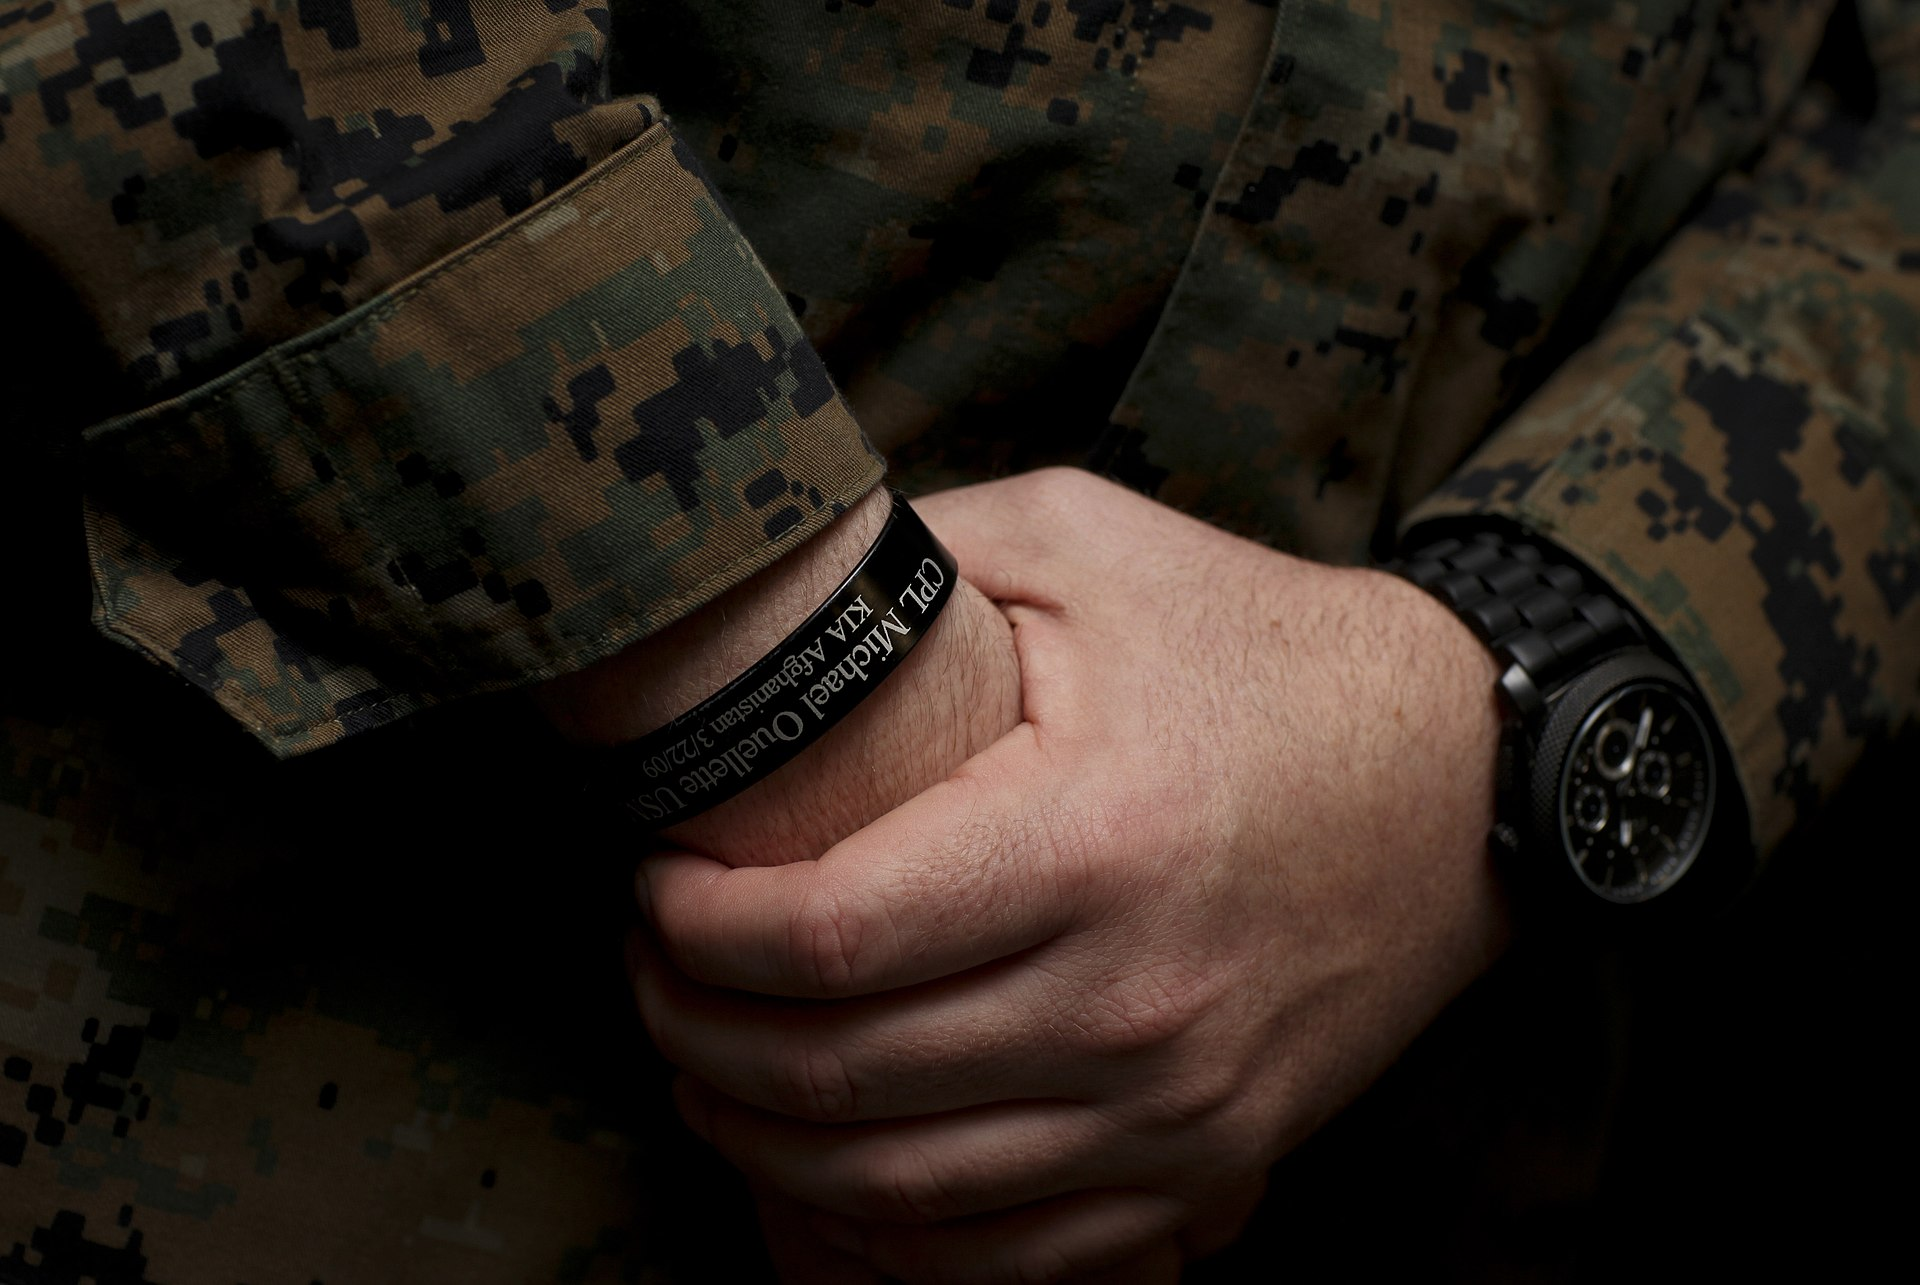 Kia Bracelet For Soldier Killed In A Car Crash